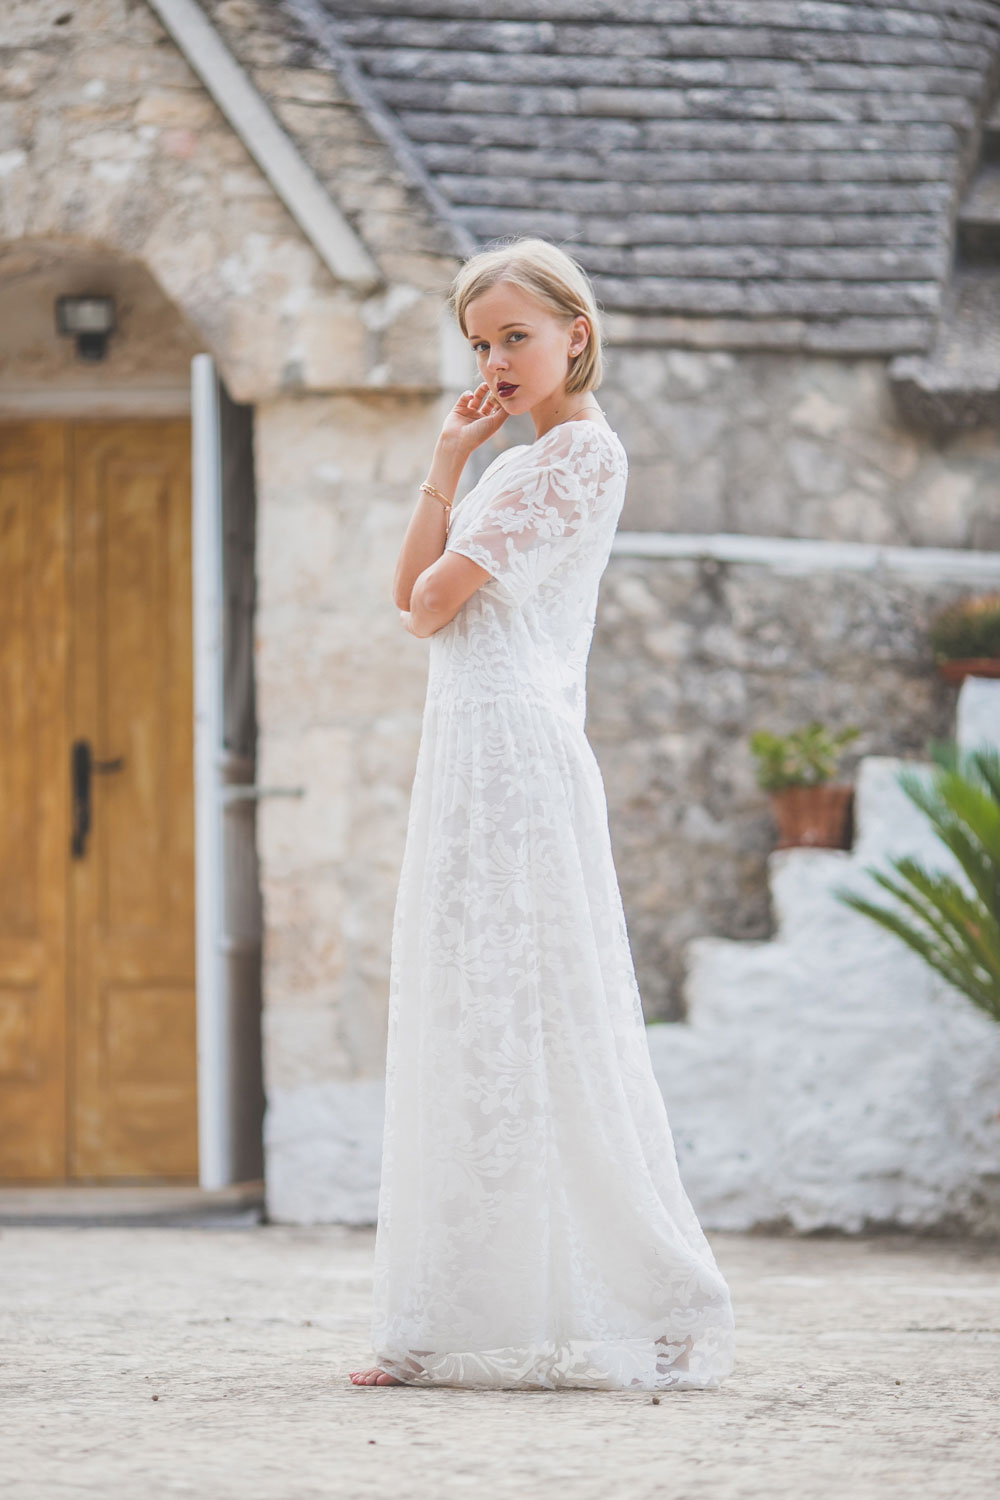 darya-kamalova-thecablook-fashion-lifestyle-blogger-from-thecablook-com-in-agri-trulli-in-puglia-south-italy-wearing-gat-rimon-white-maxi-lace-dress-4009